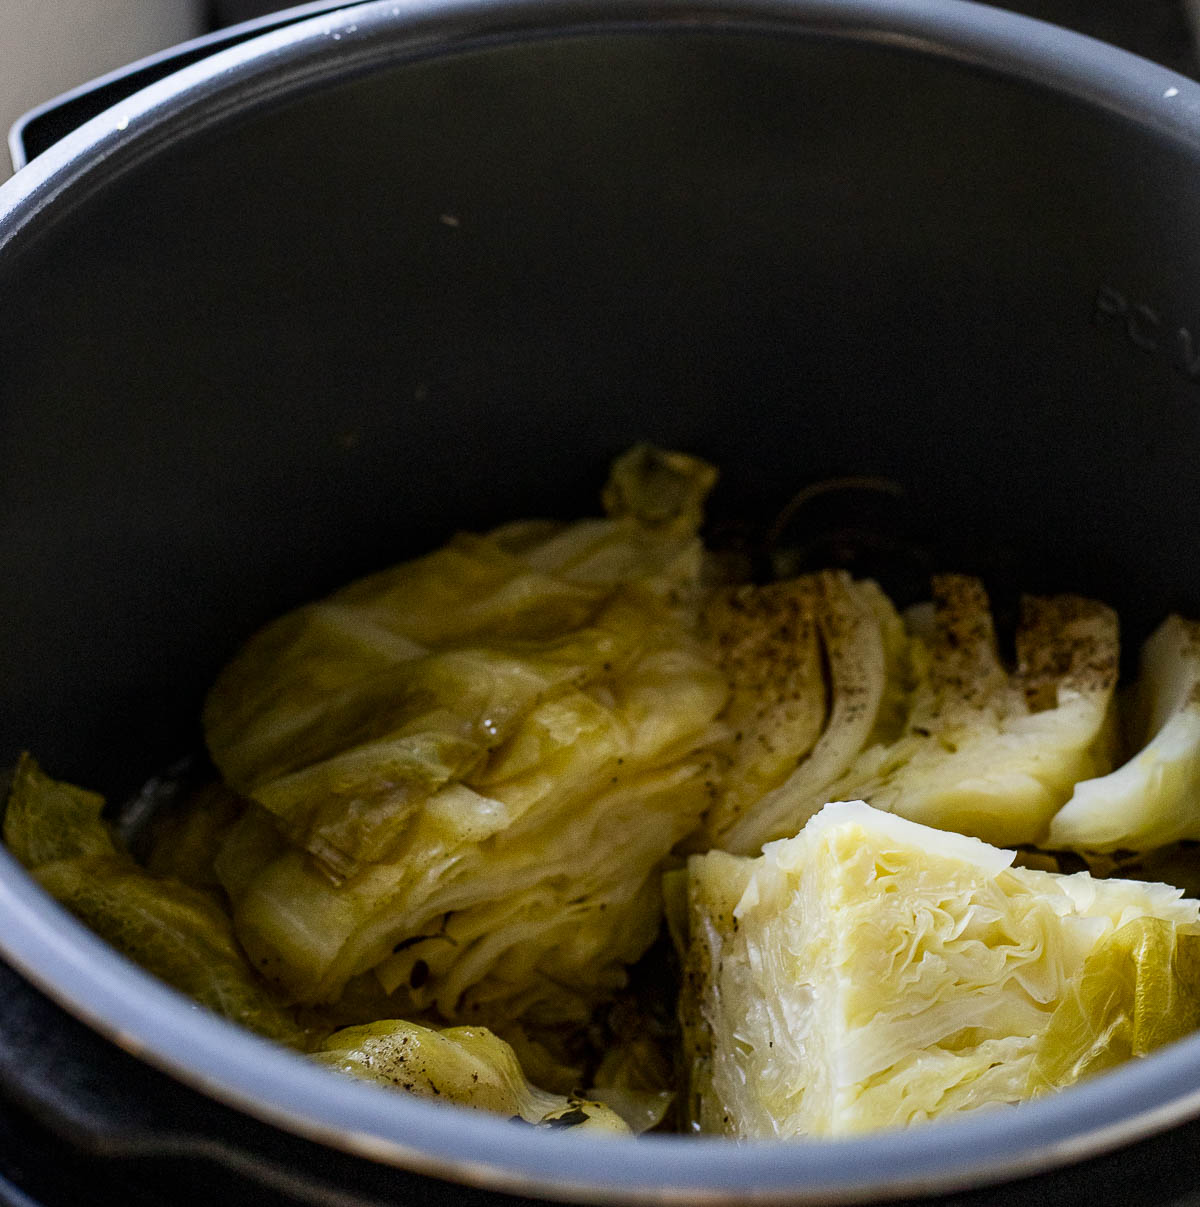 Cooked cabbage pieces in the Instant Pot.